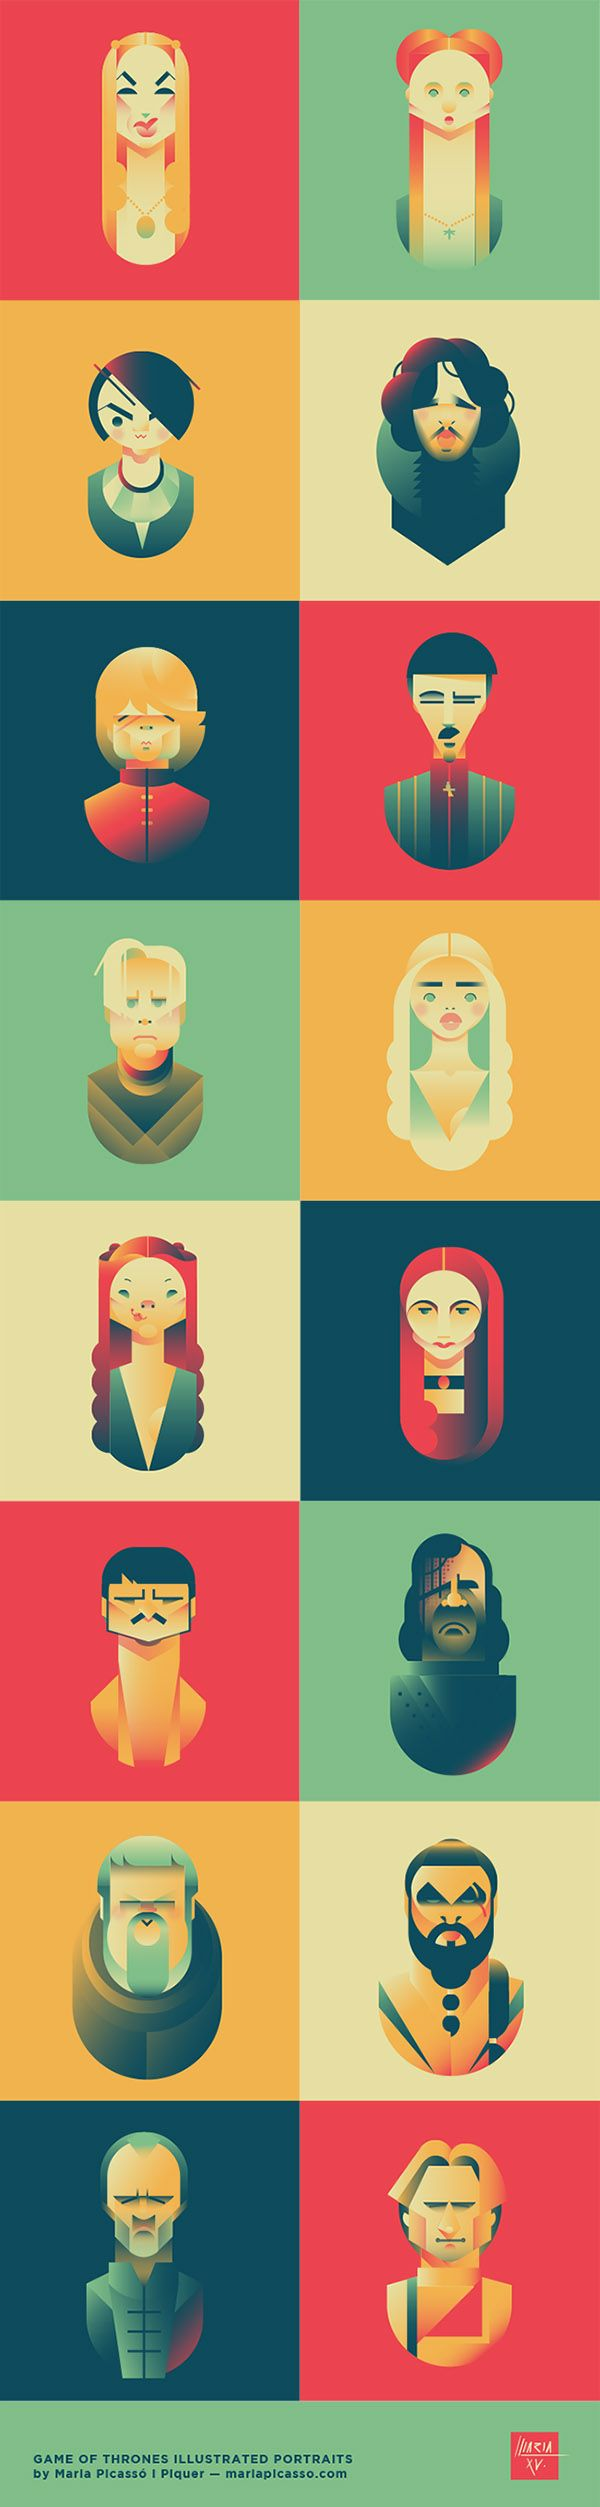 Game of Thrones vector illustrated caricature portraits by Maria Picassó i Piquer.